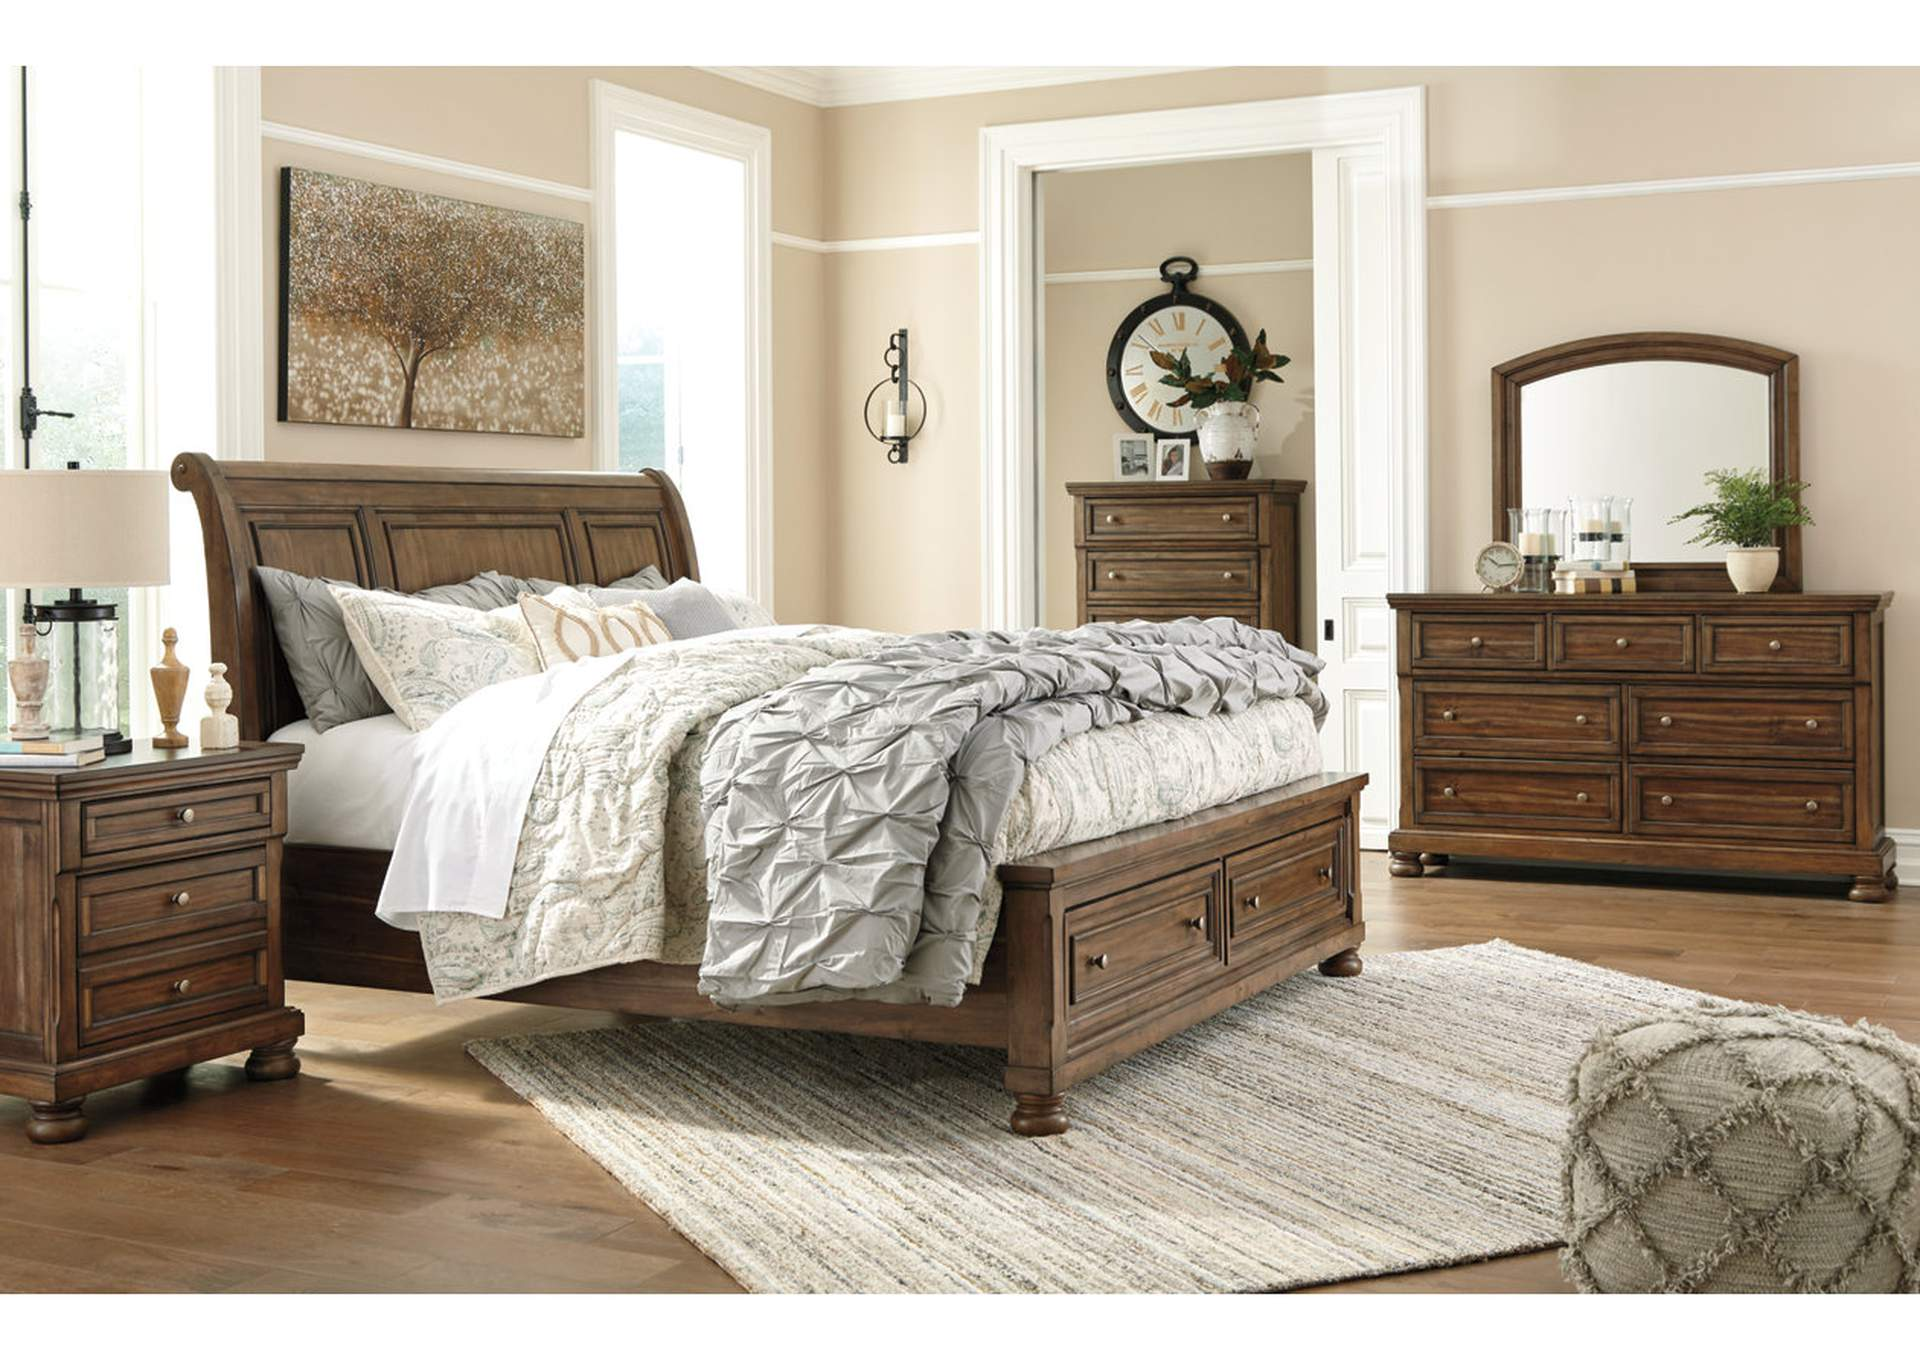 Flynnter Medium Brown Nightstand,Direct To Consumer Express